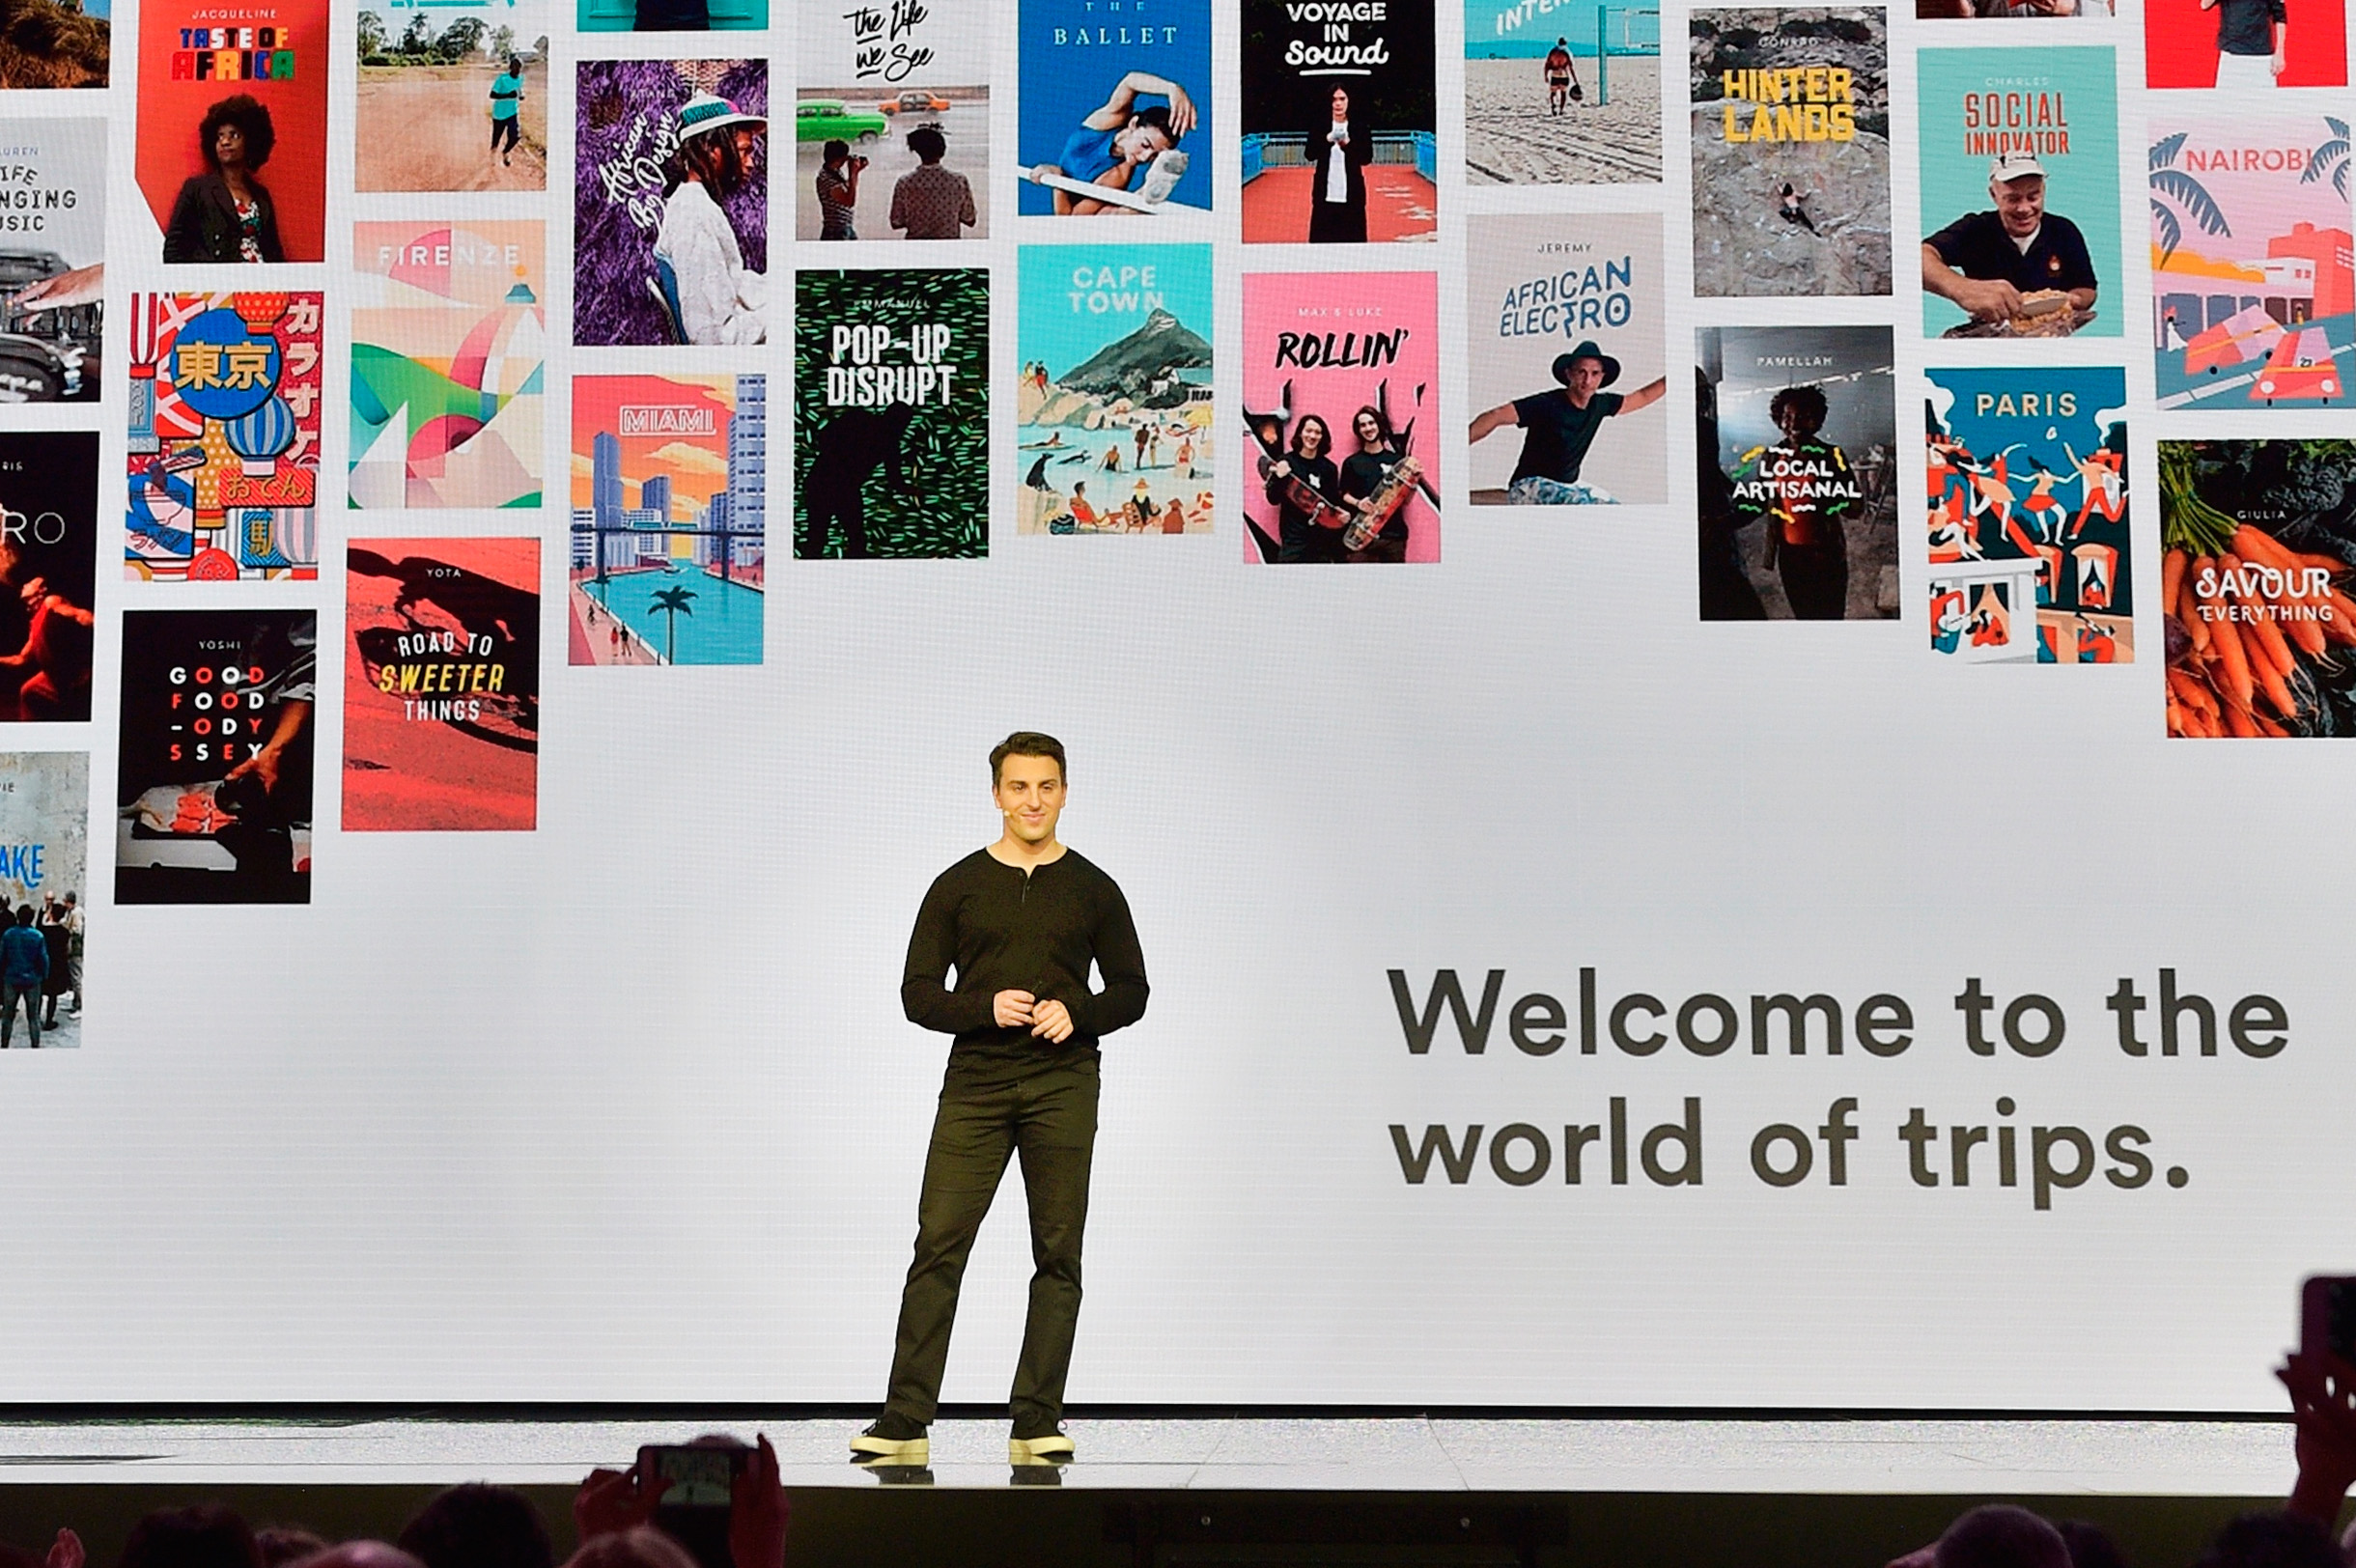 Airbnb co-founder and CEO Brian Chesky speaks onstage at 'Introducing Trips' Reveal at Airbnb Open LA on November 17, 2016